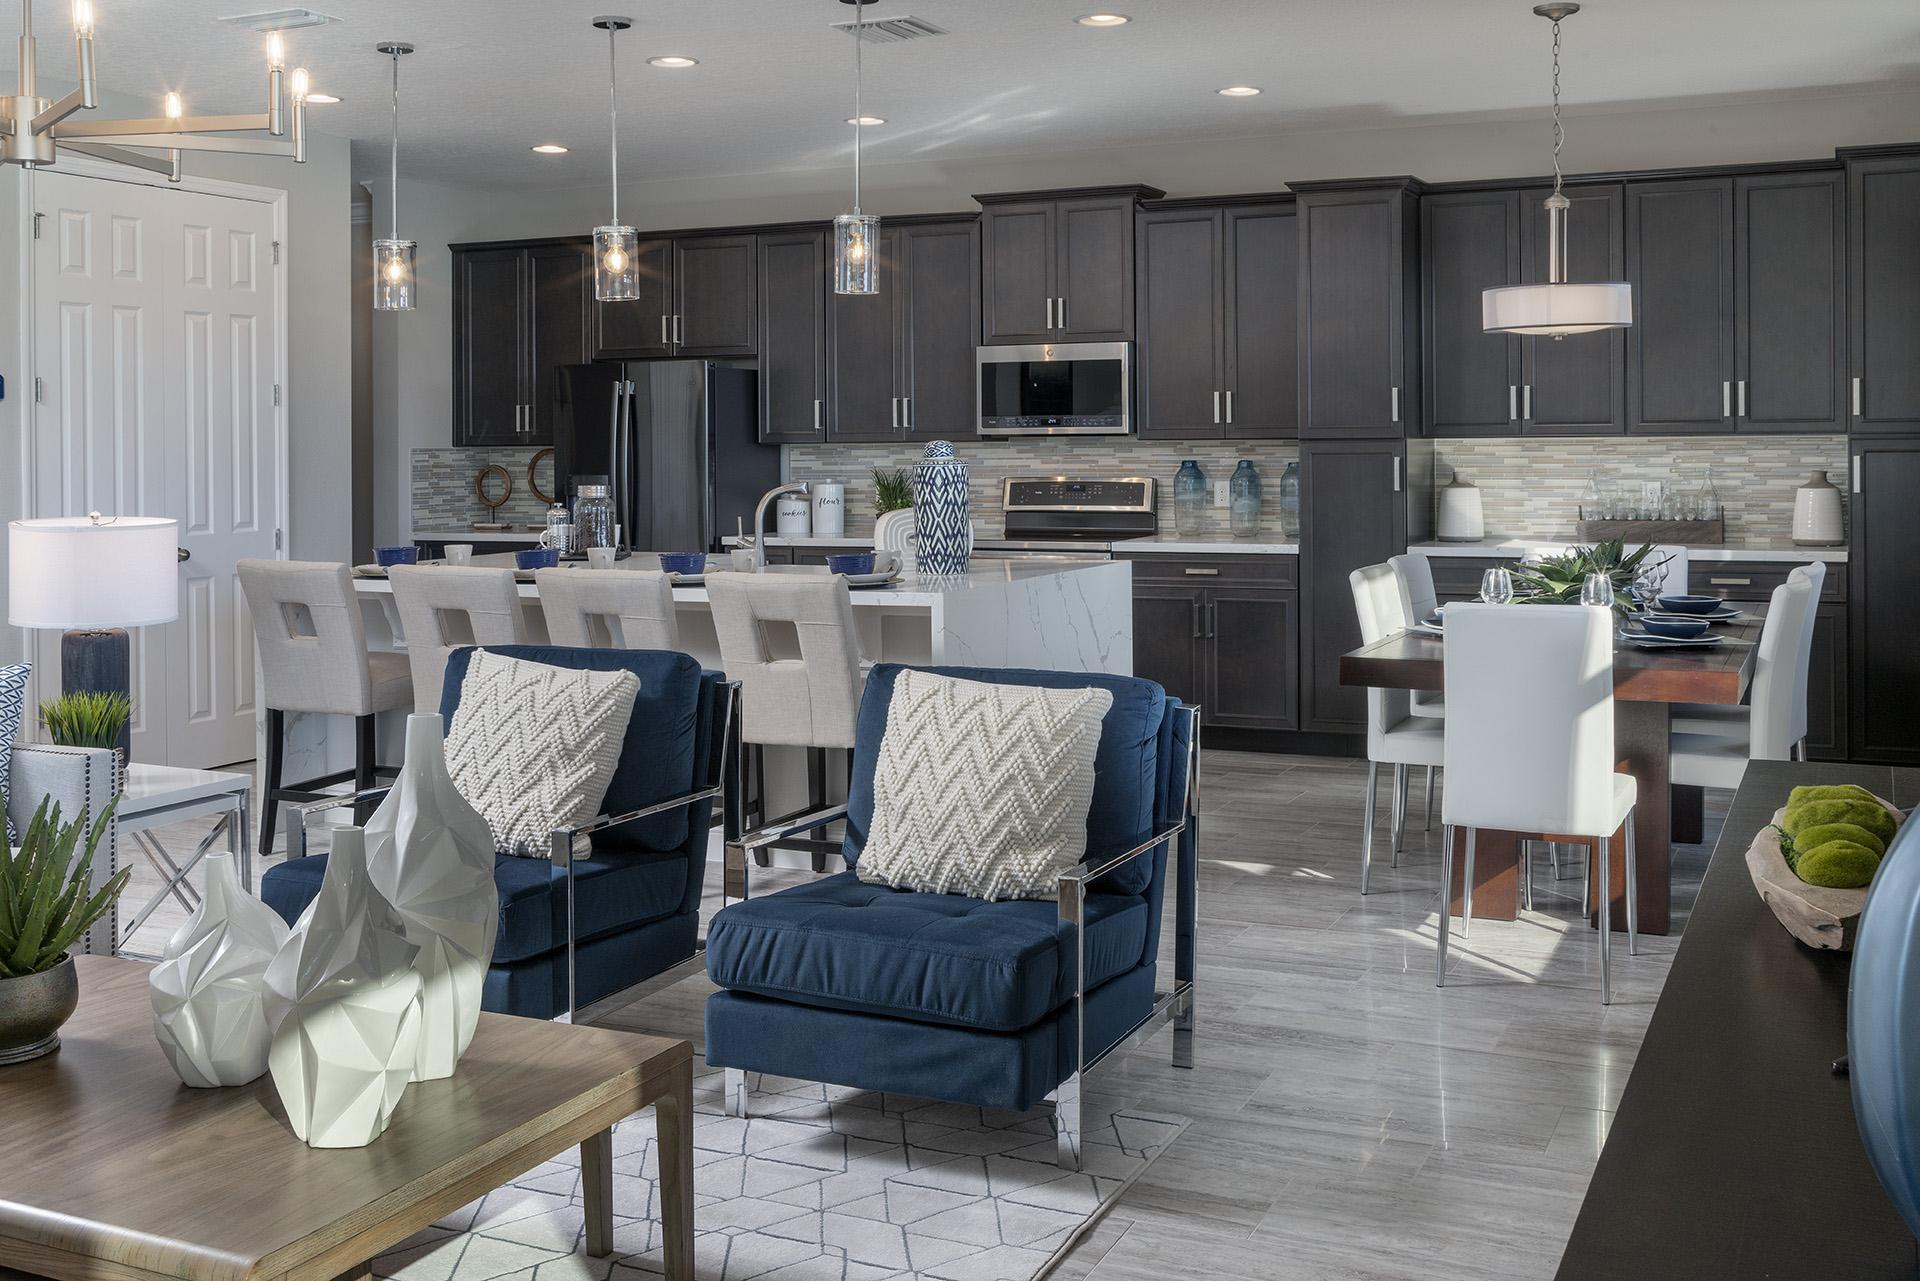 Living Area featured in the Osceola Executive By Hanover Family Builders in Orlando, FL